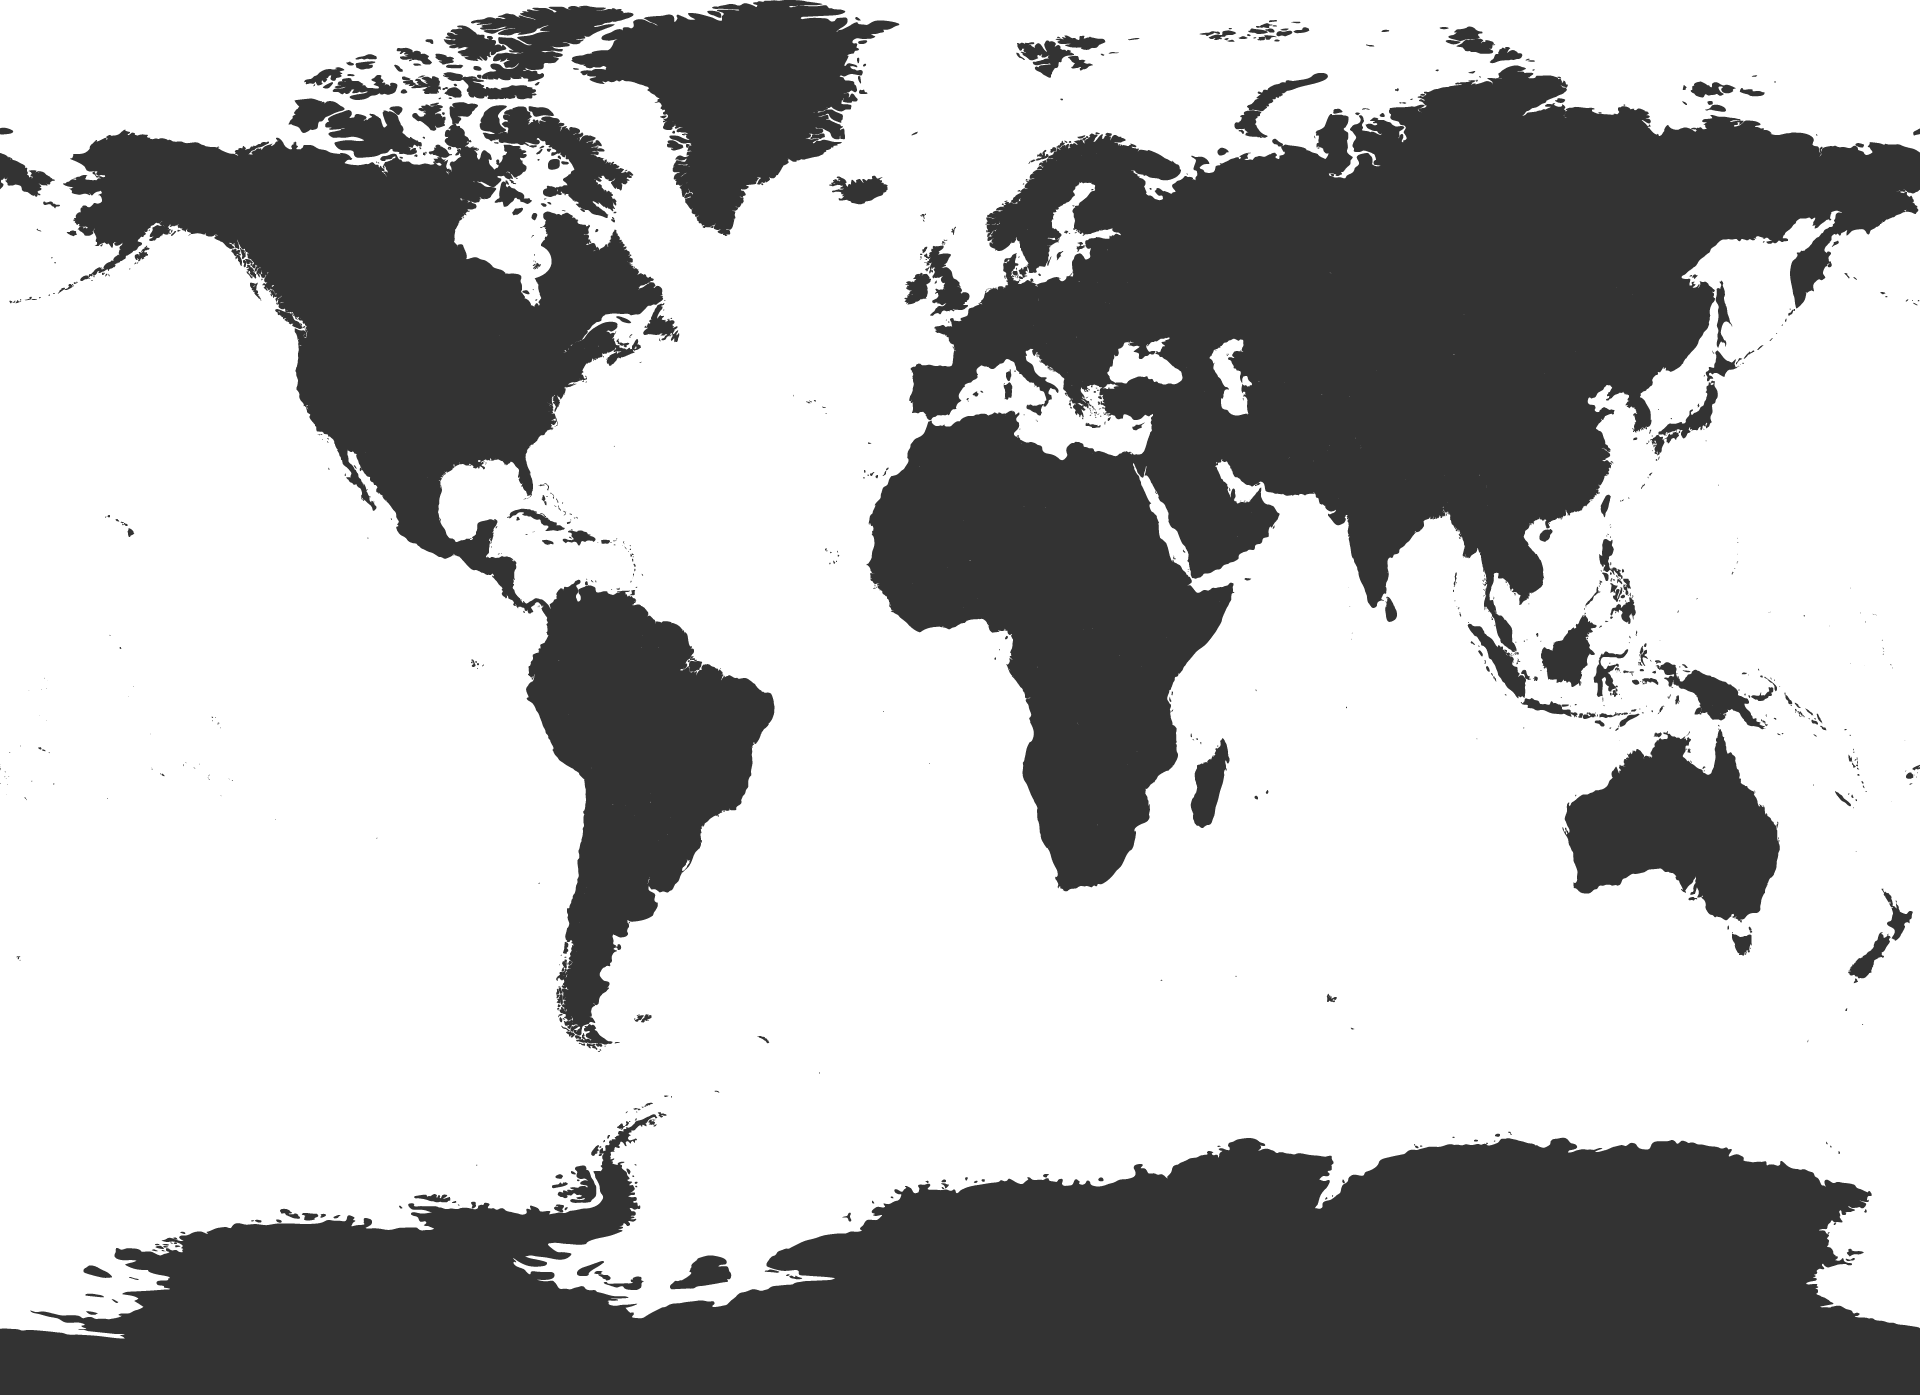 Black And White Png Map